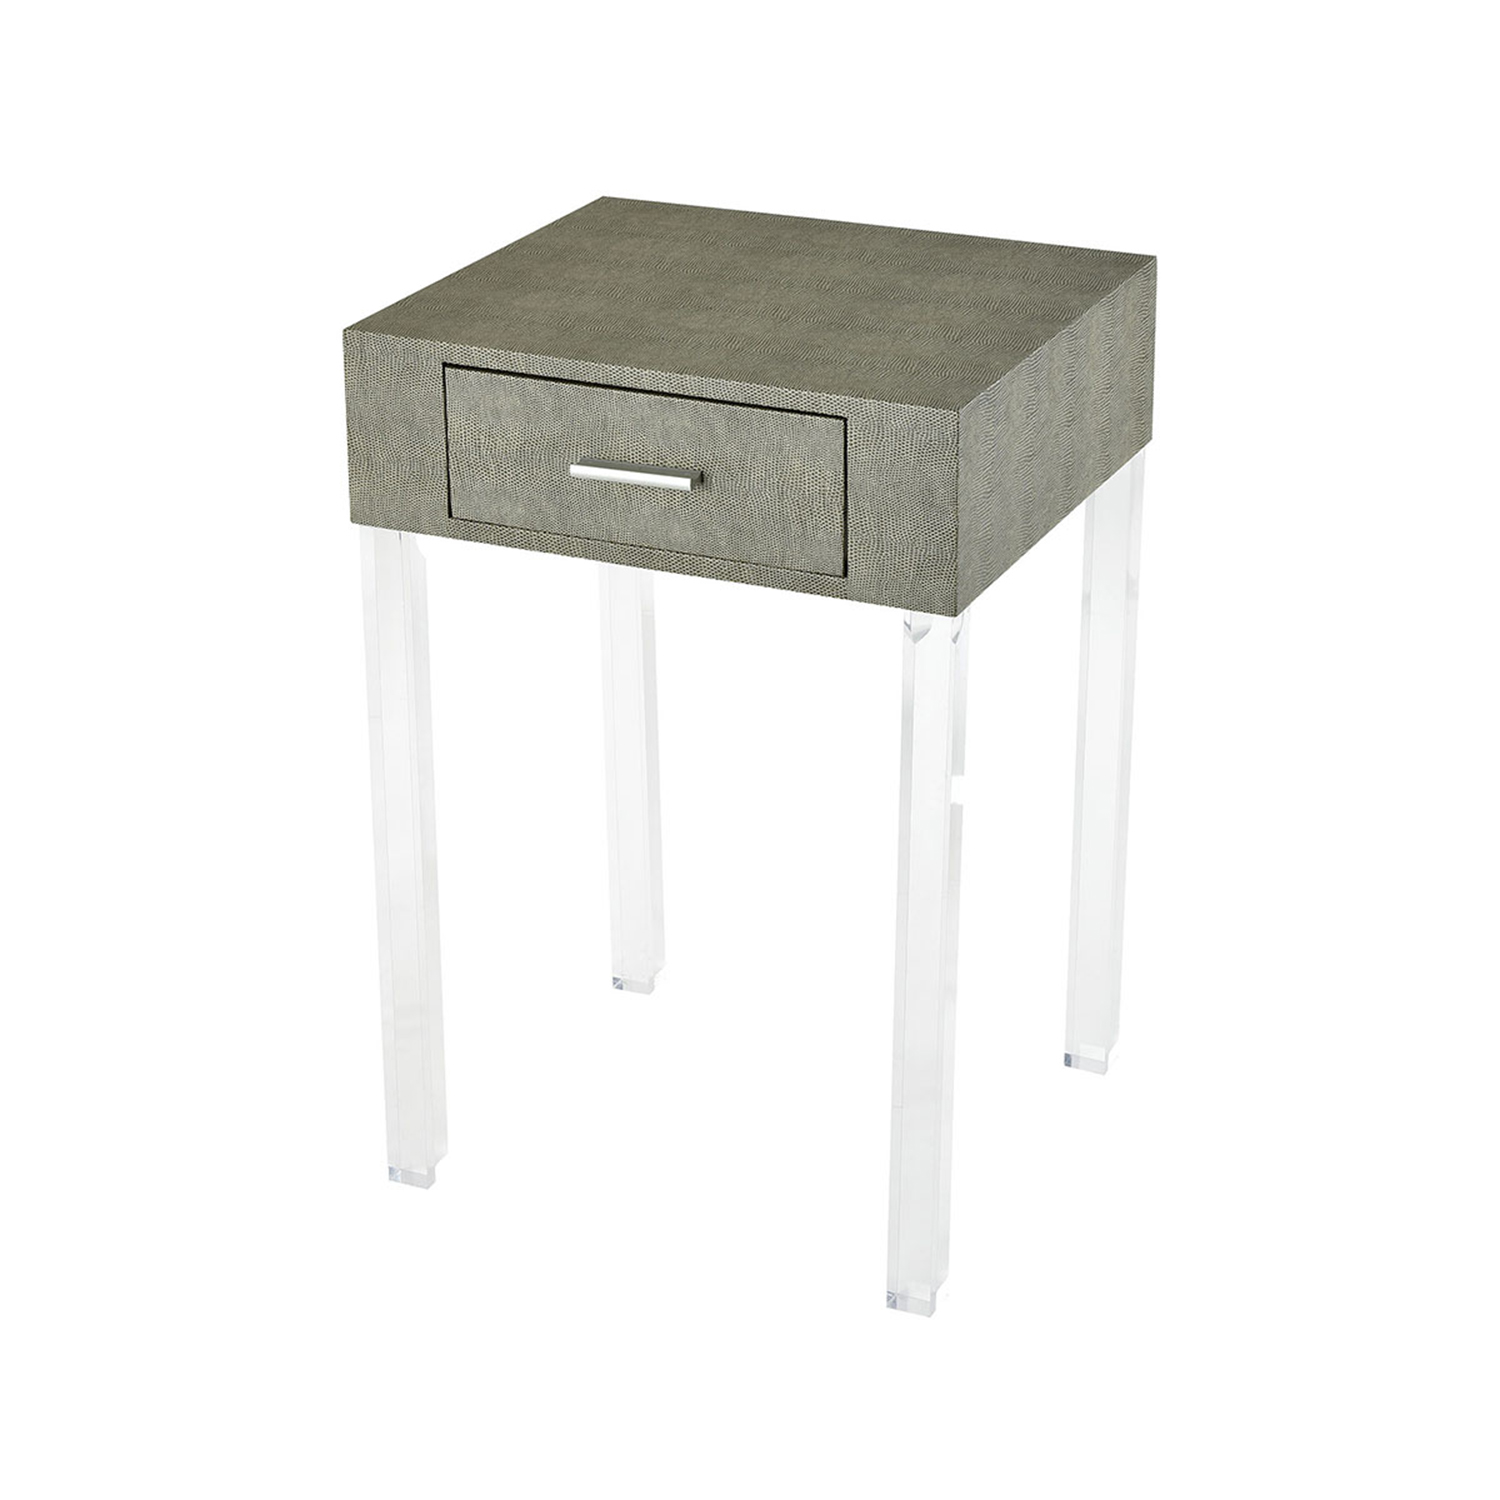 sterling industries ville grey faux shagreen and clear acrylic accent table inch hover zoom victorian lamps garden furniture covers fur west elm paint colors small front porch